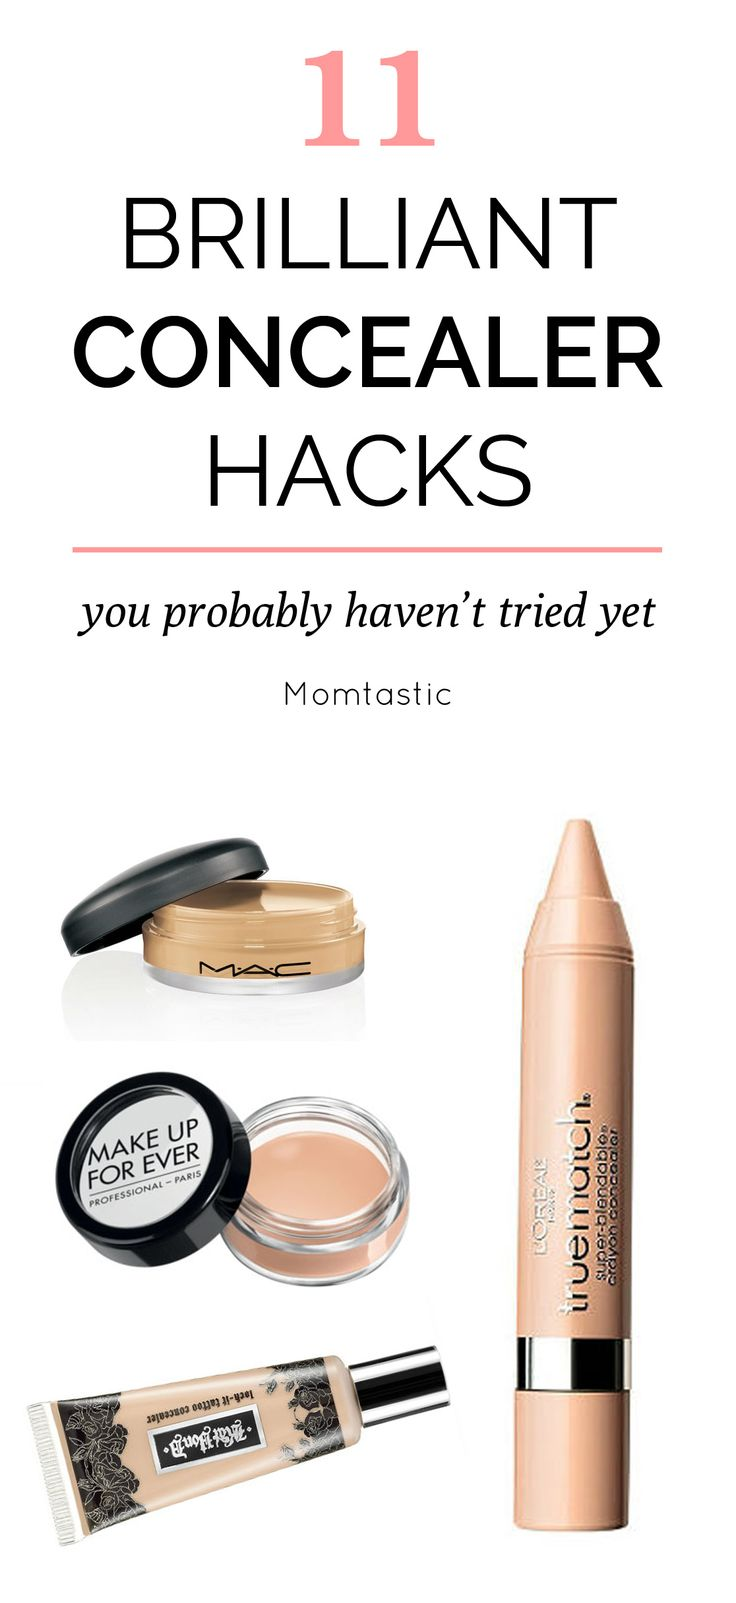 t's also quite the multitasking tool. From lip-plumper to brow-popper, here are some pretty brilliant concealer hacks I've discovered that you may not have thought of (plus some great brand recommendations).